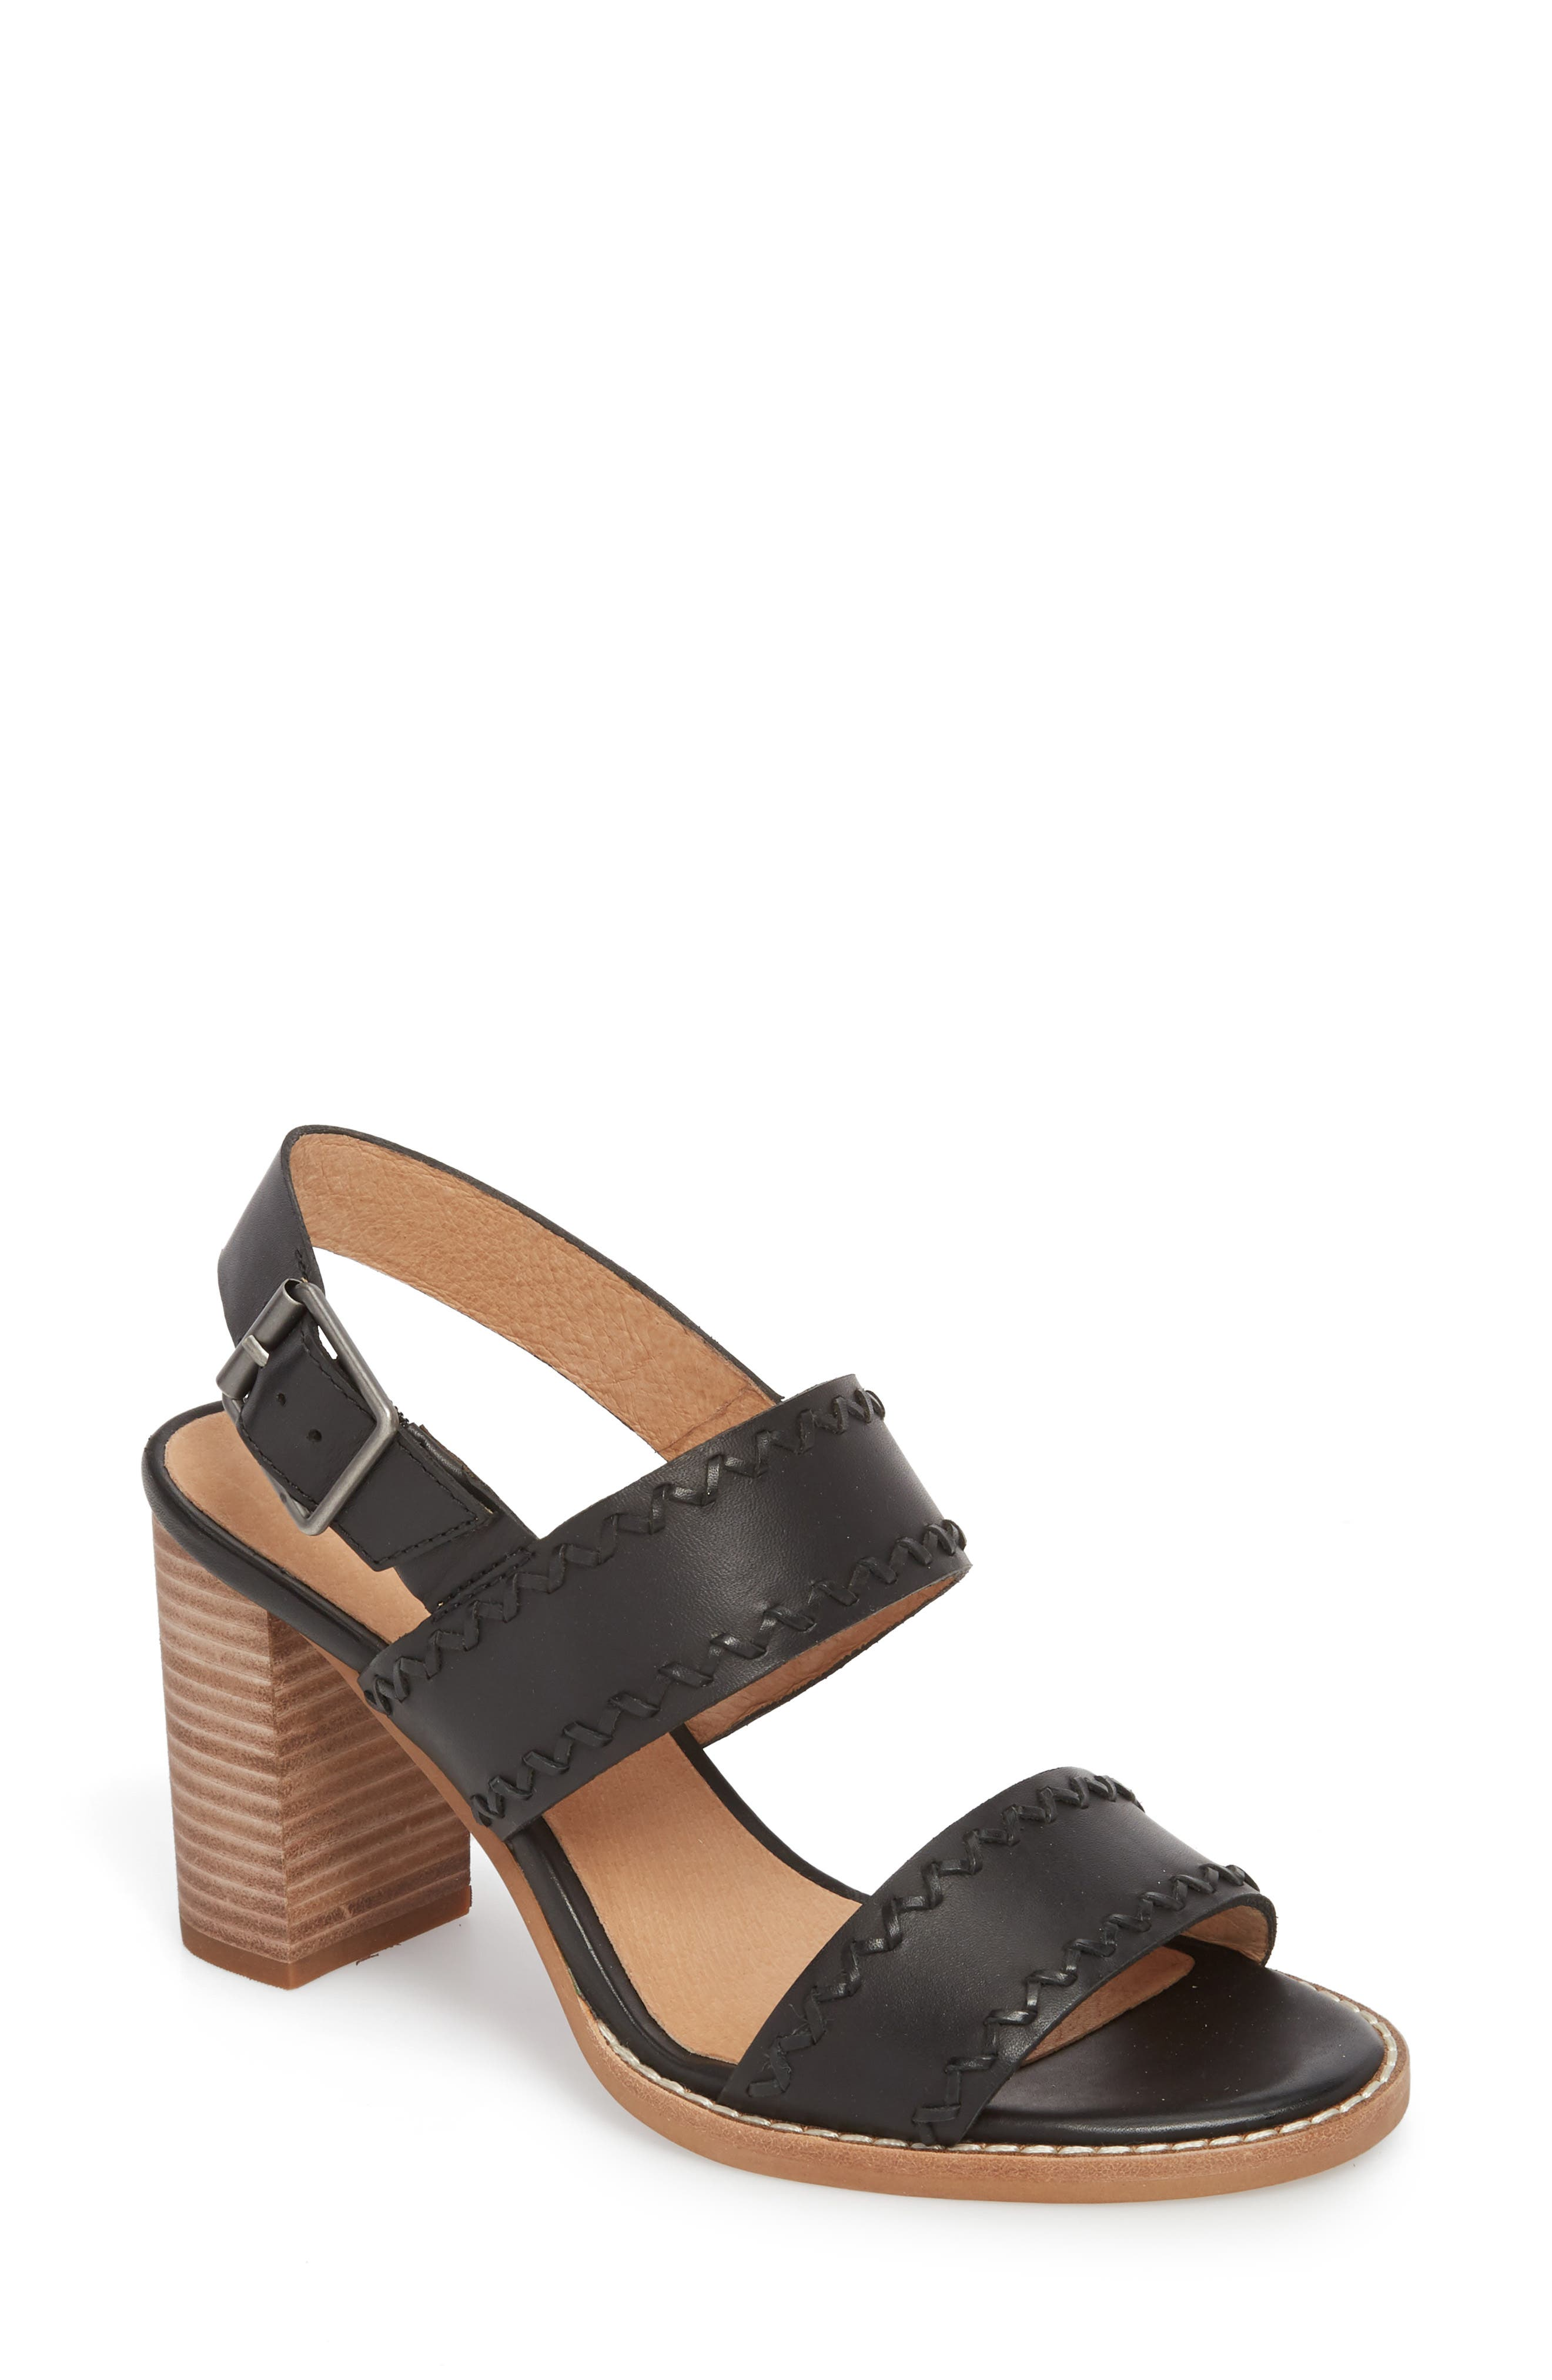 Giana Sandal,                         Main,                         color, True Black Leather